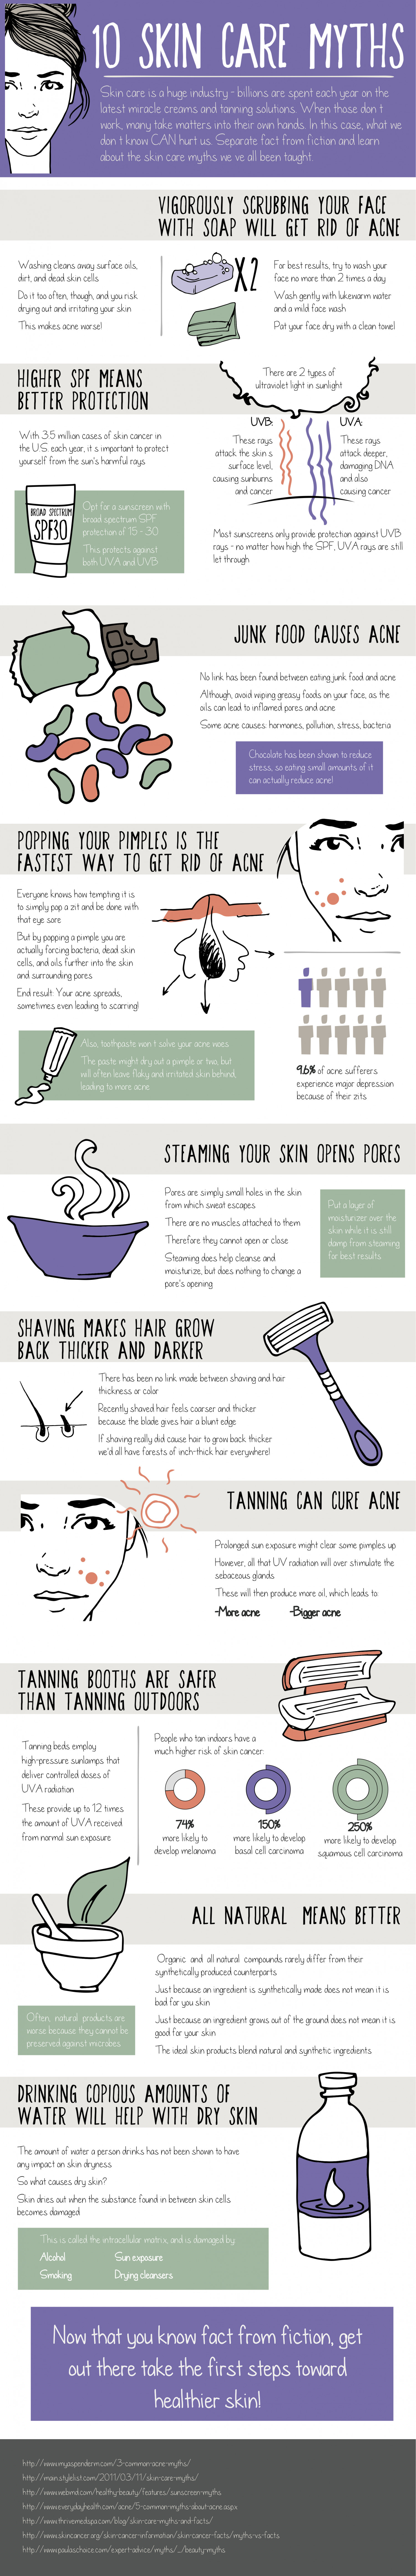 10 Skin Care Myths Infographic